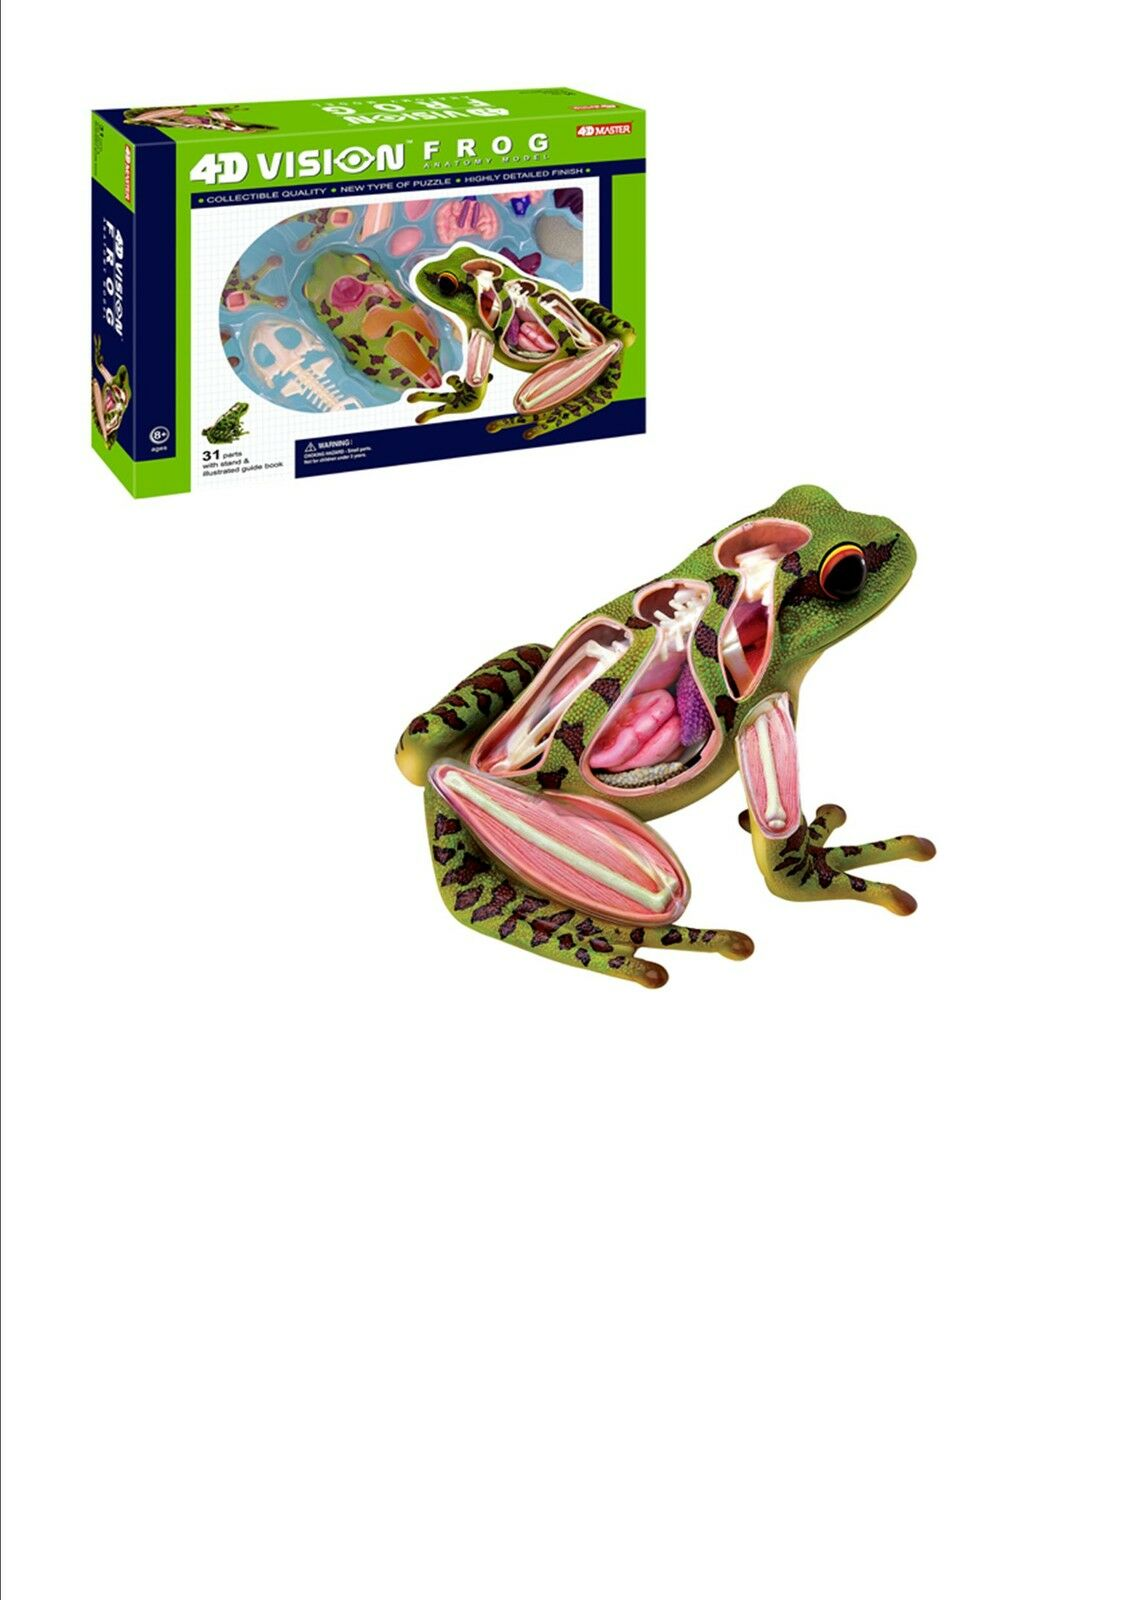 FROG ANATOMY MODEL/PUZZLE, 4D Vision Kit #26104 TEDCO SCIENCE TOYS ...